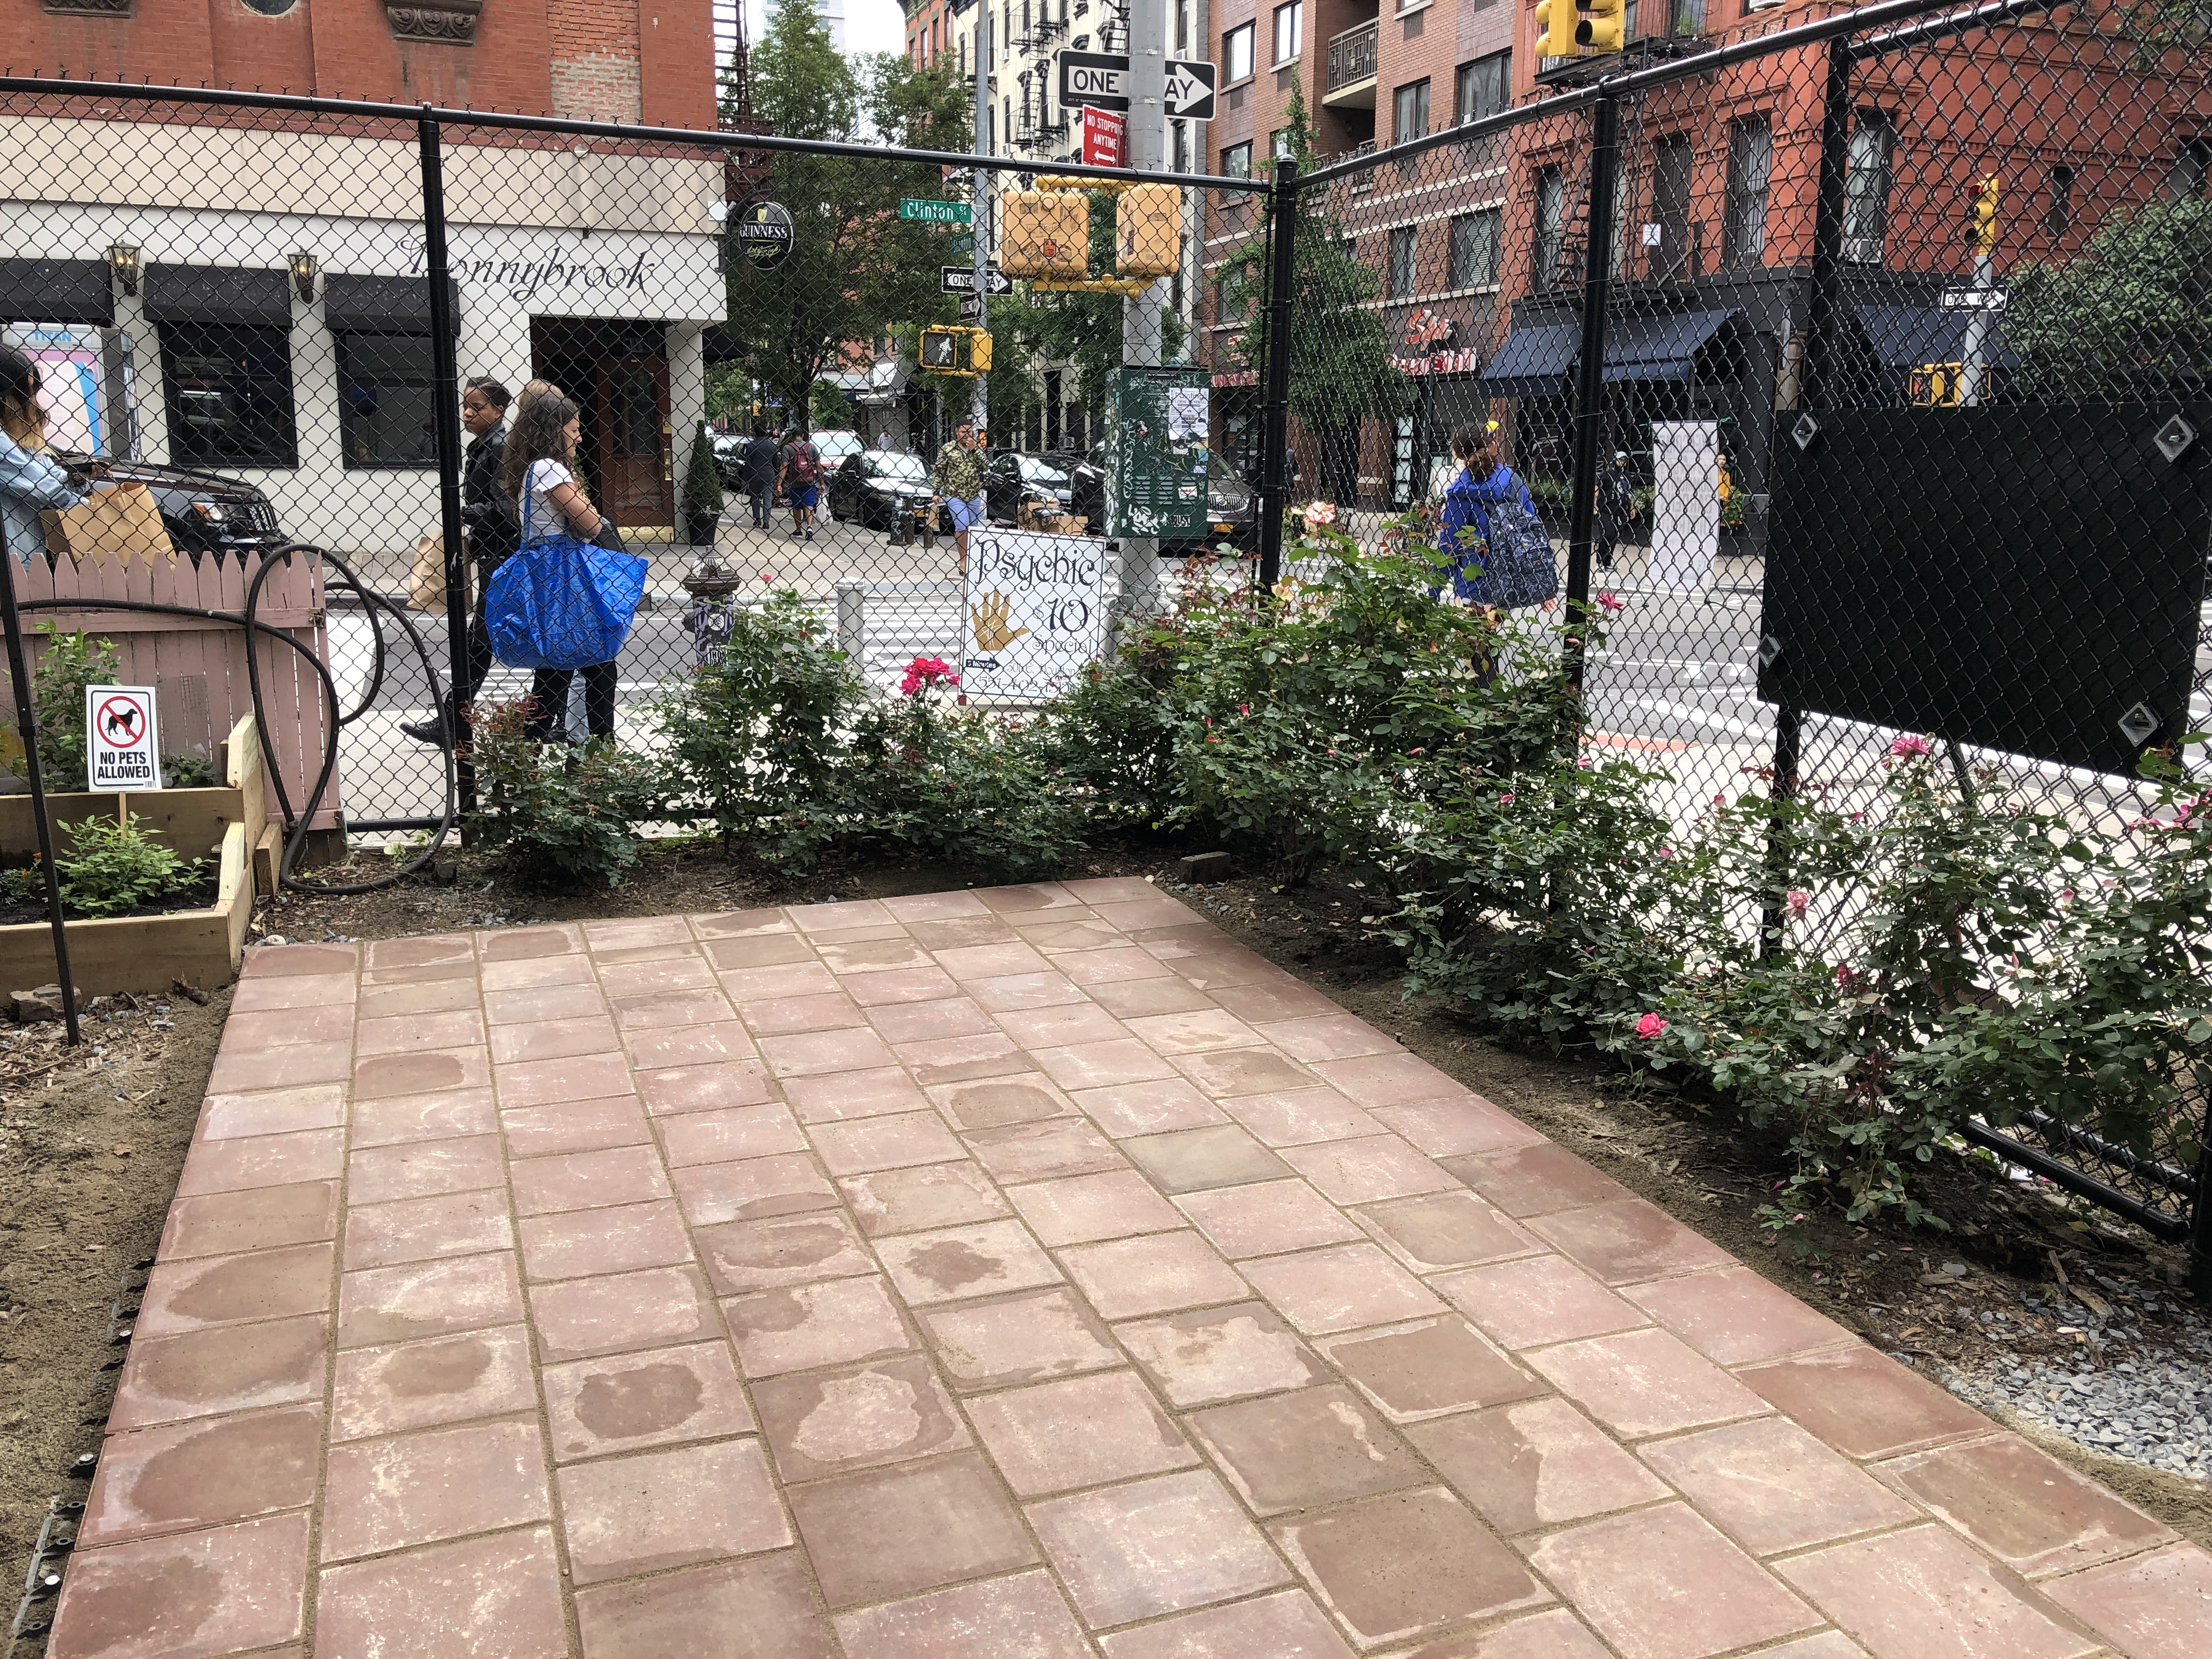 The Clinton Community Garden gives residents of the Lower East Side a place to connect. Photo: Project EverGreen